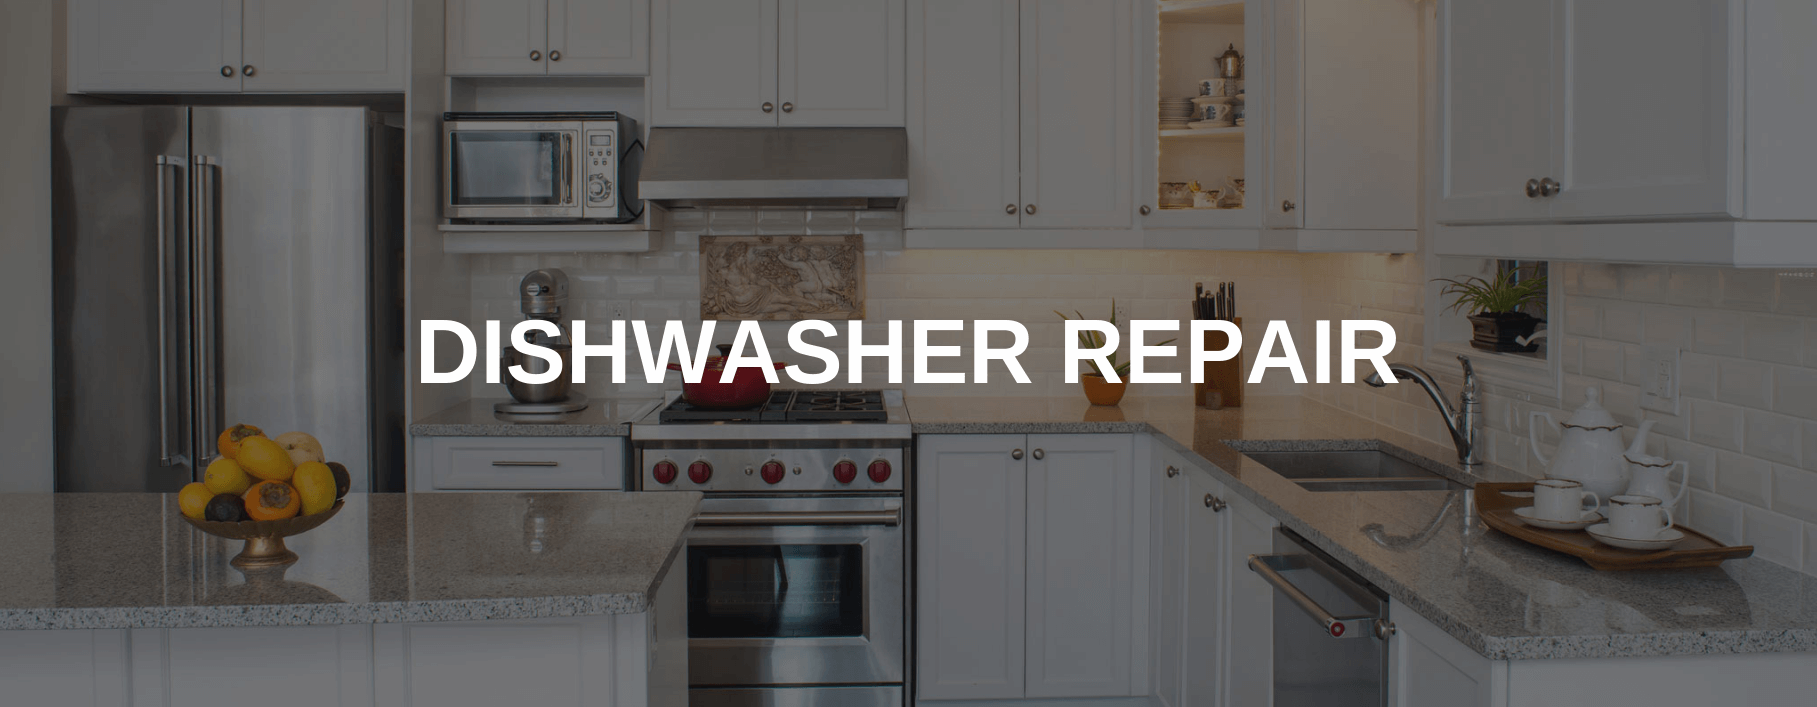 dishwasher repair durham